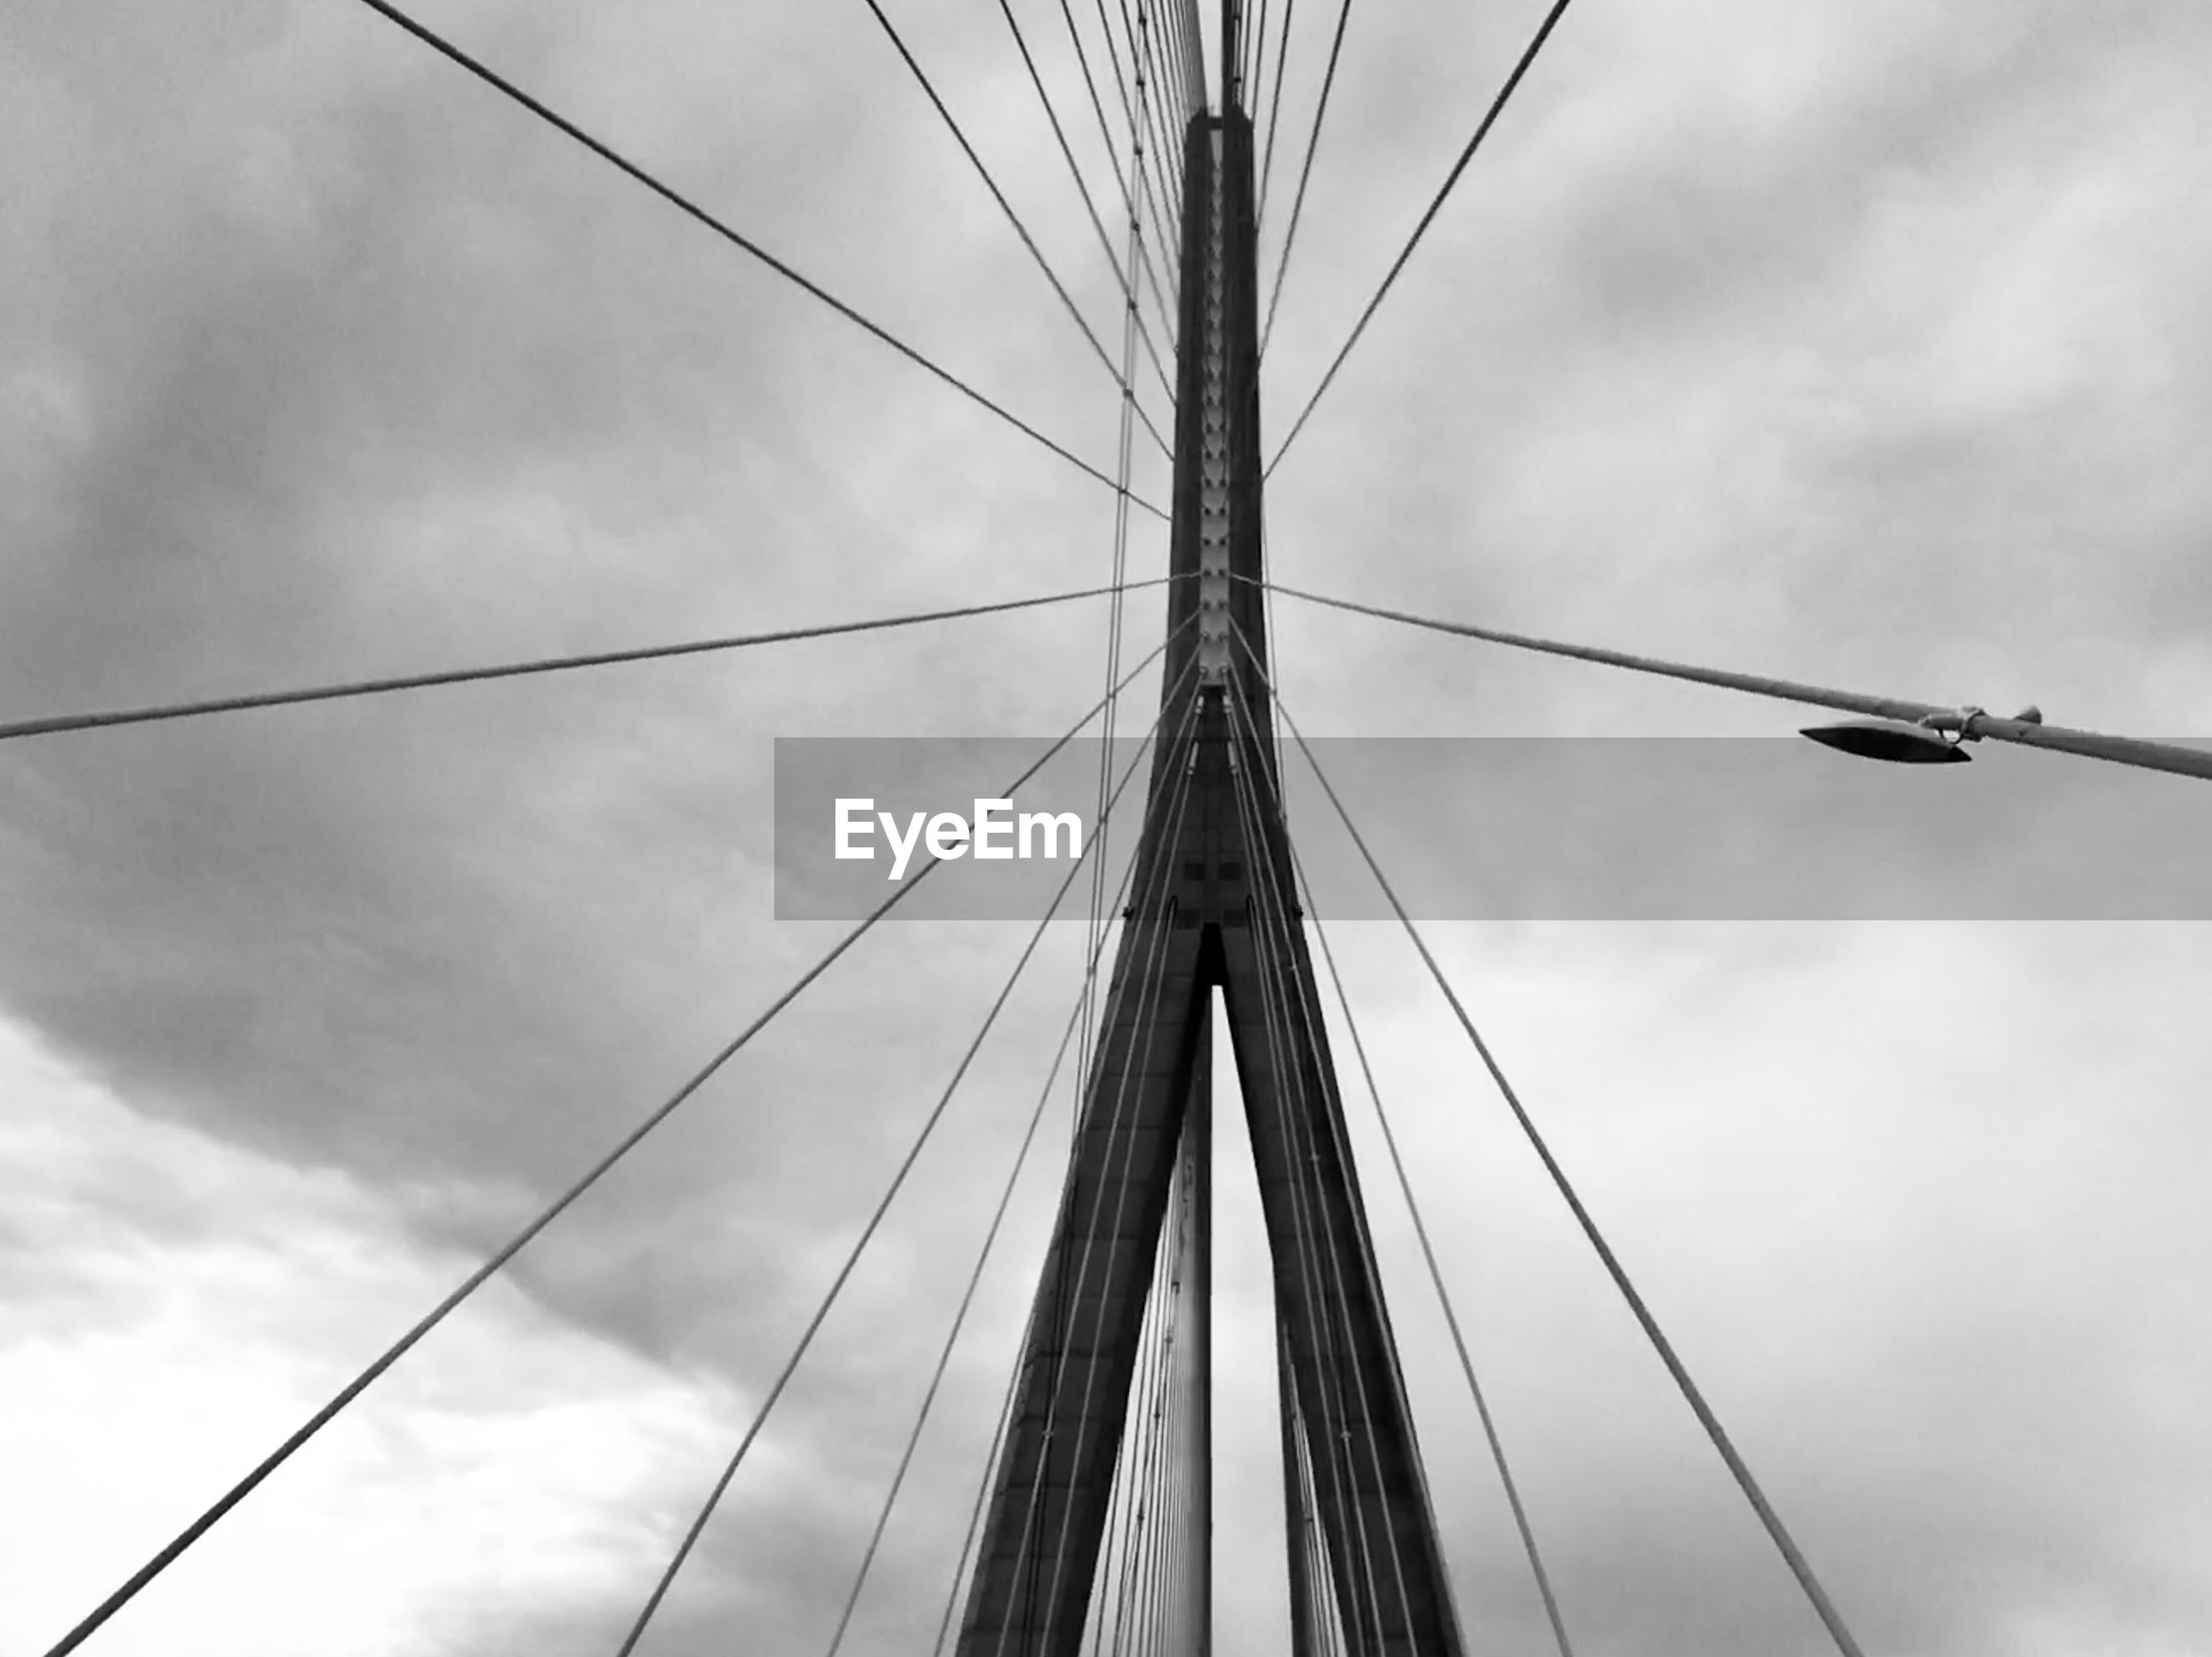 Directly below shot cable-stayed bridge against cloudy sky